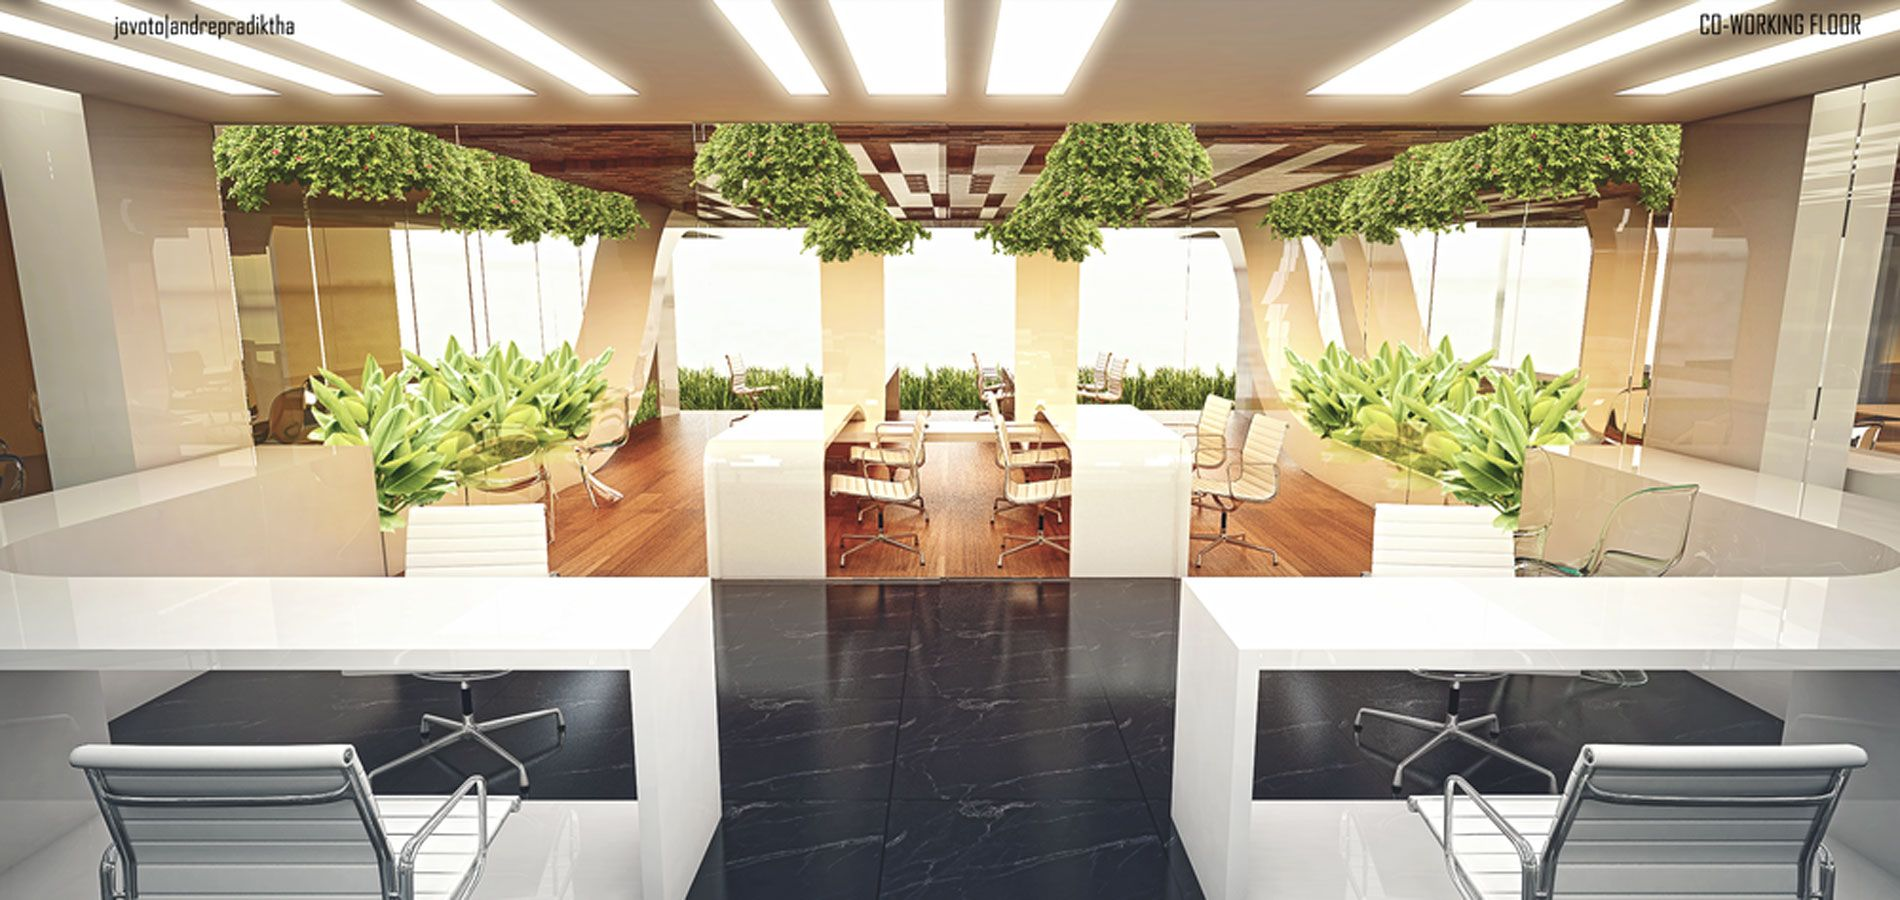 innovative office designs. Design Contest For Prodigy Network\u0027s Airport Business Hub Uses Crowdsourcing To Inspiring Office Spaces. Innovative Designs F